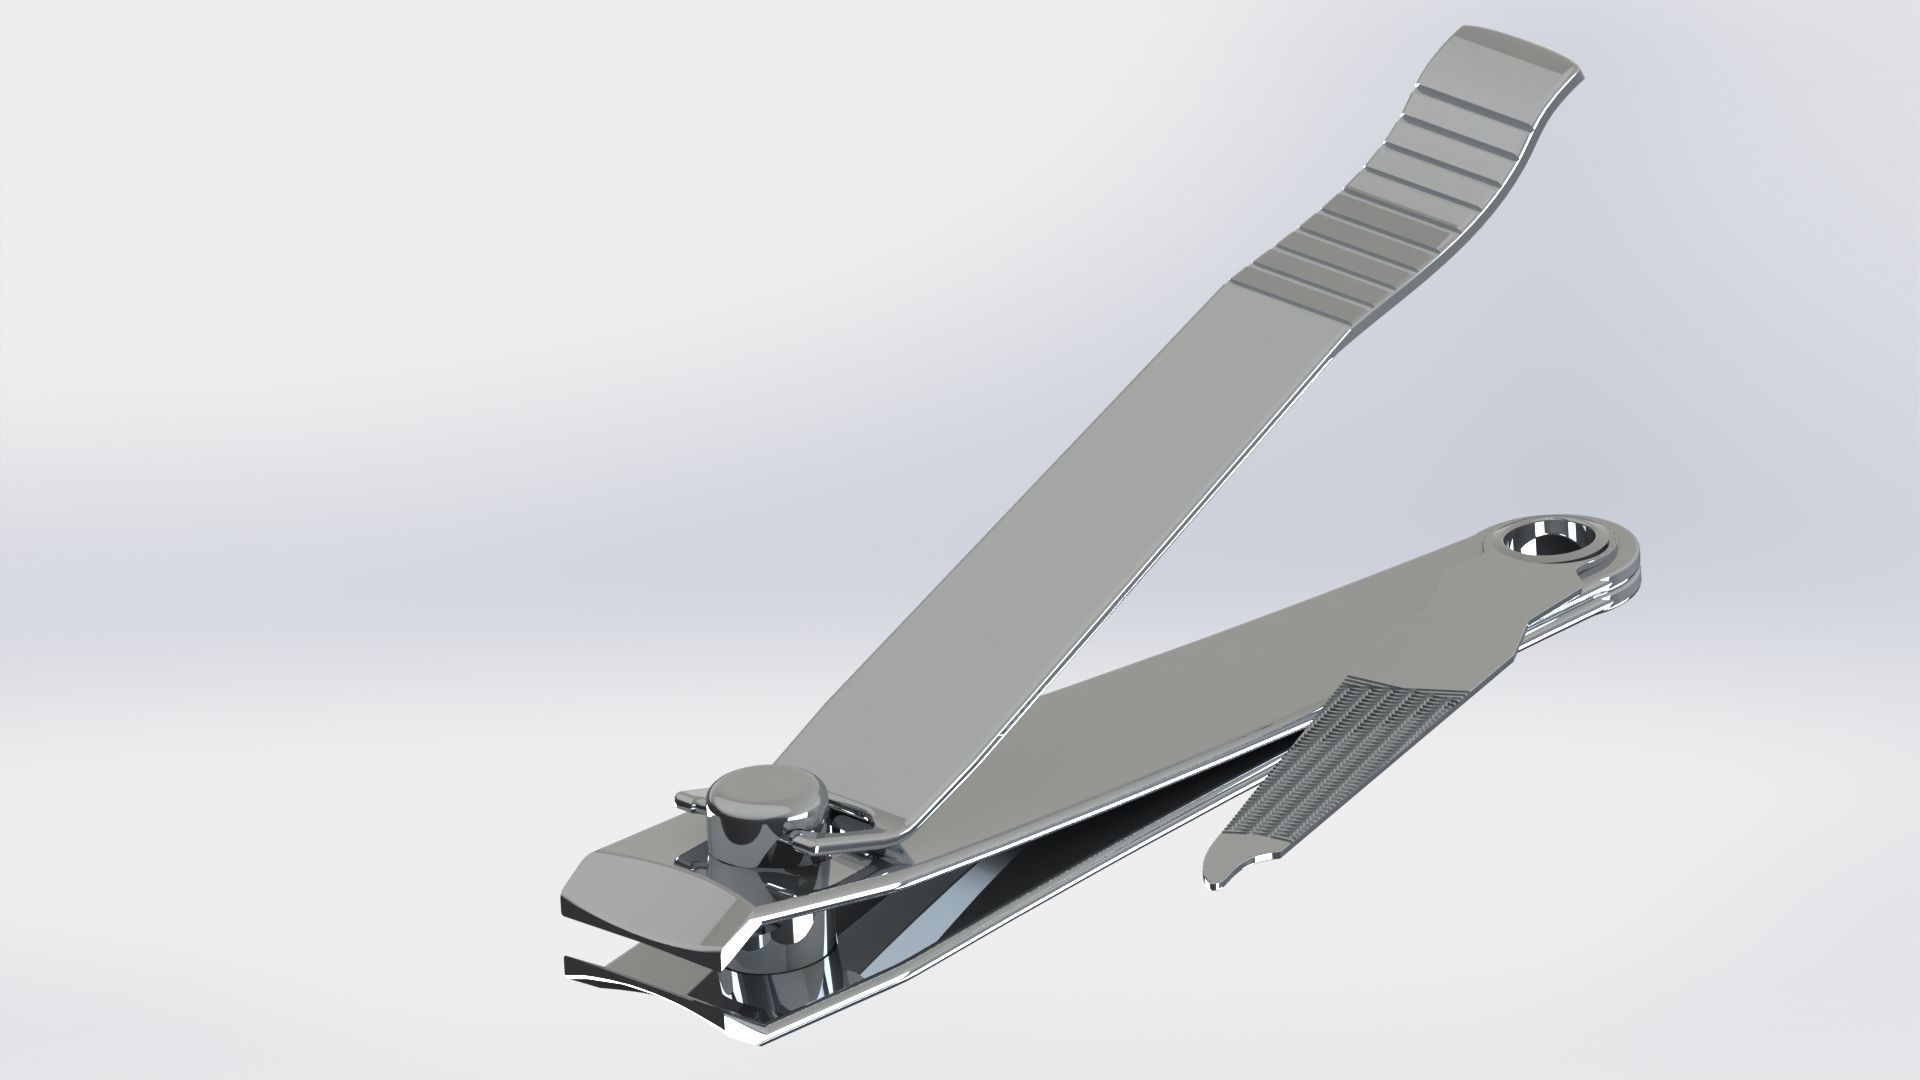 Nails Clipper - SolidWorks